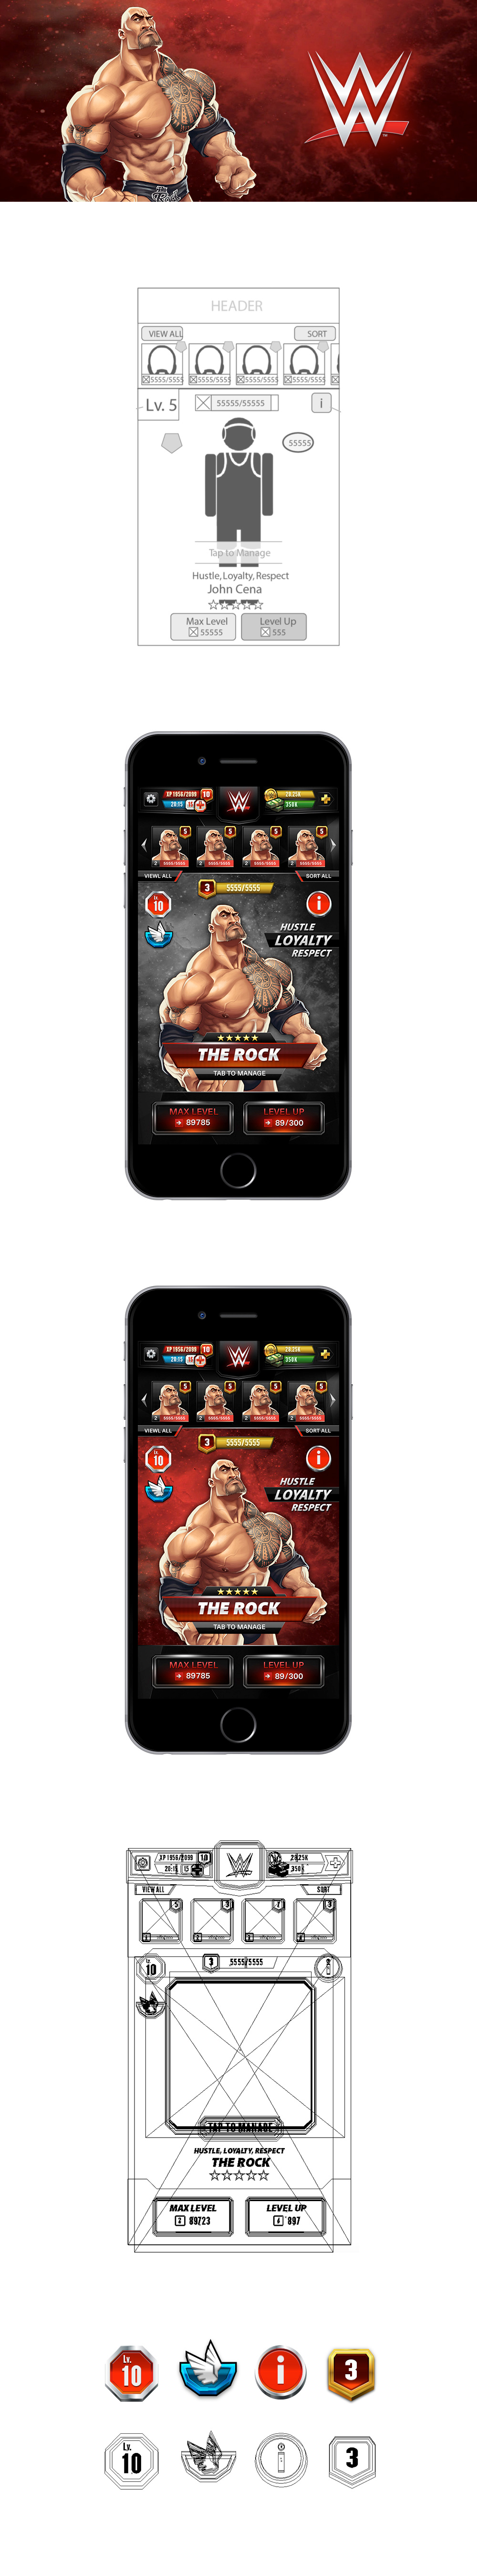 WWE Mobile Gaming Design